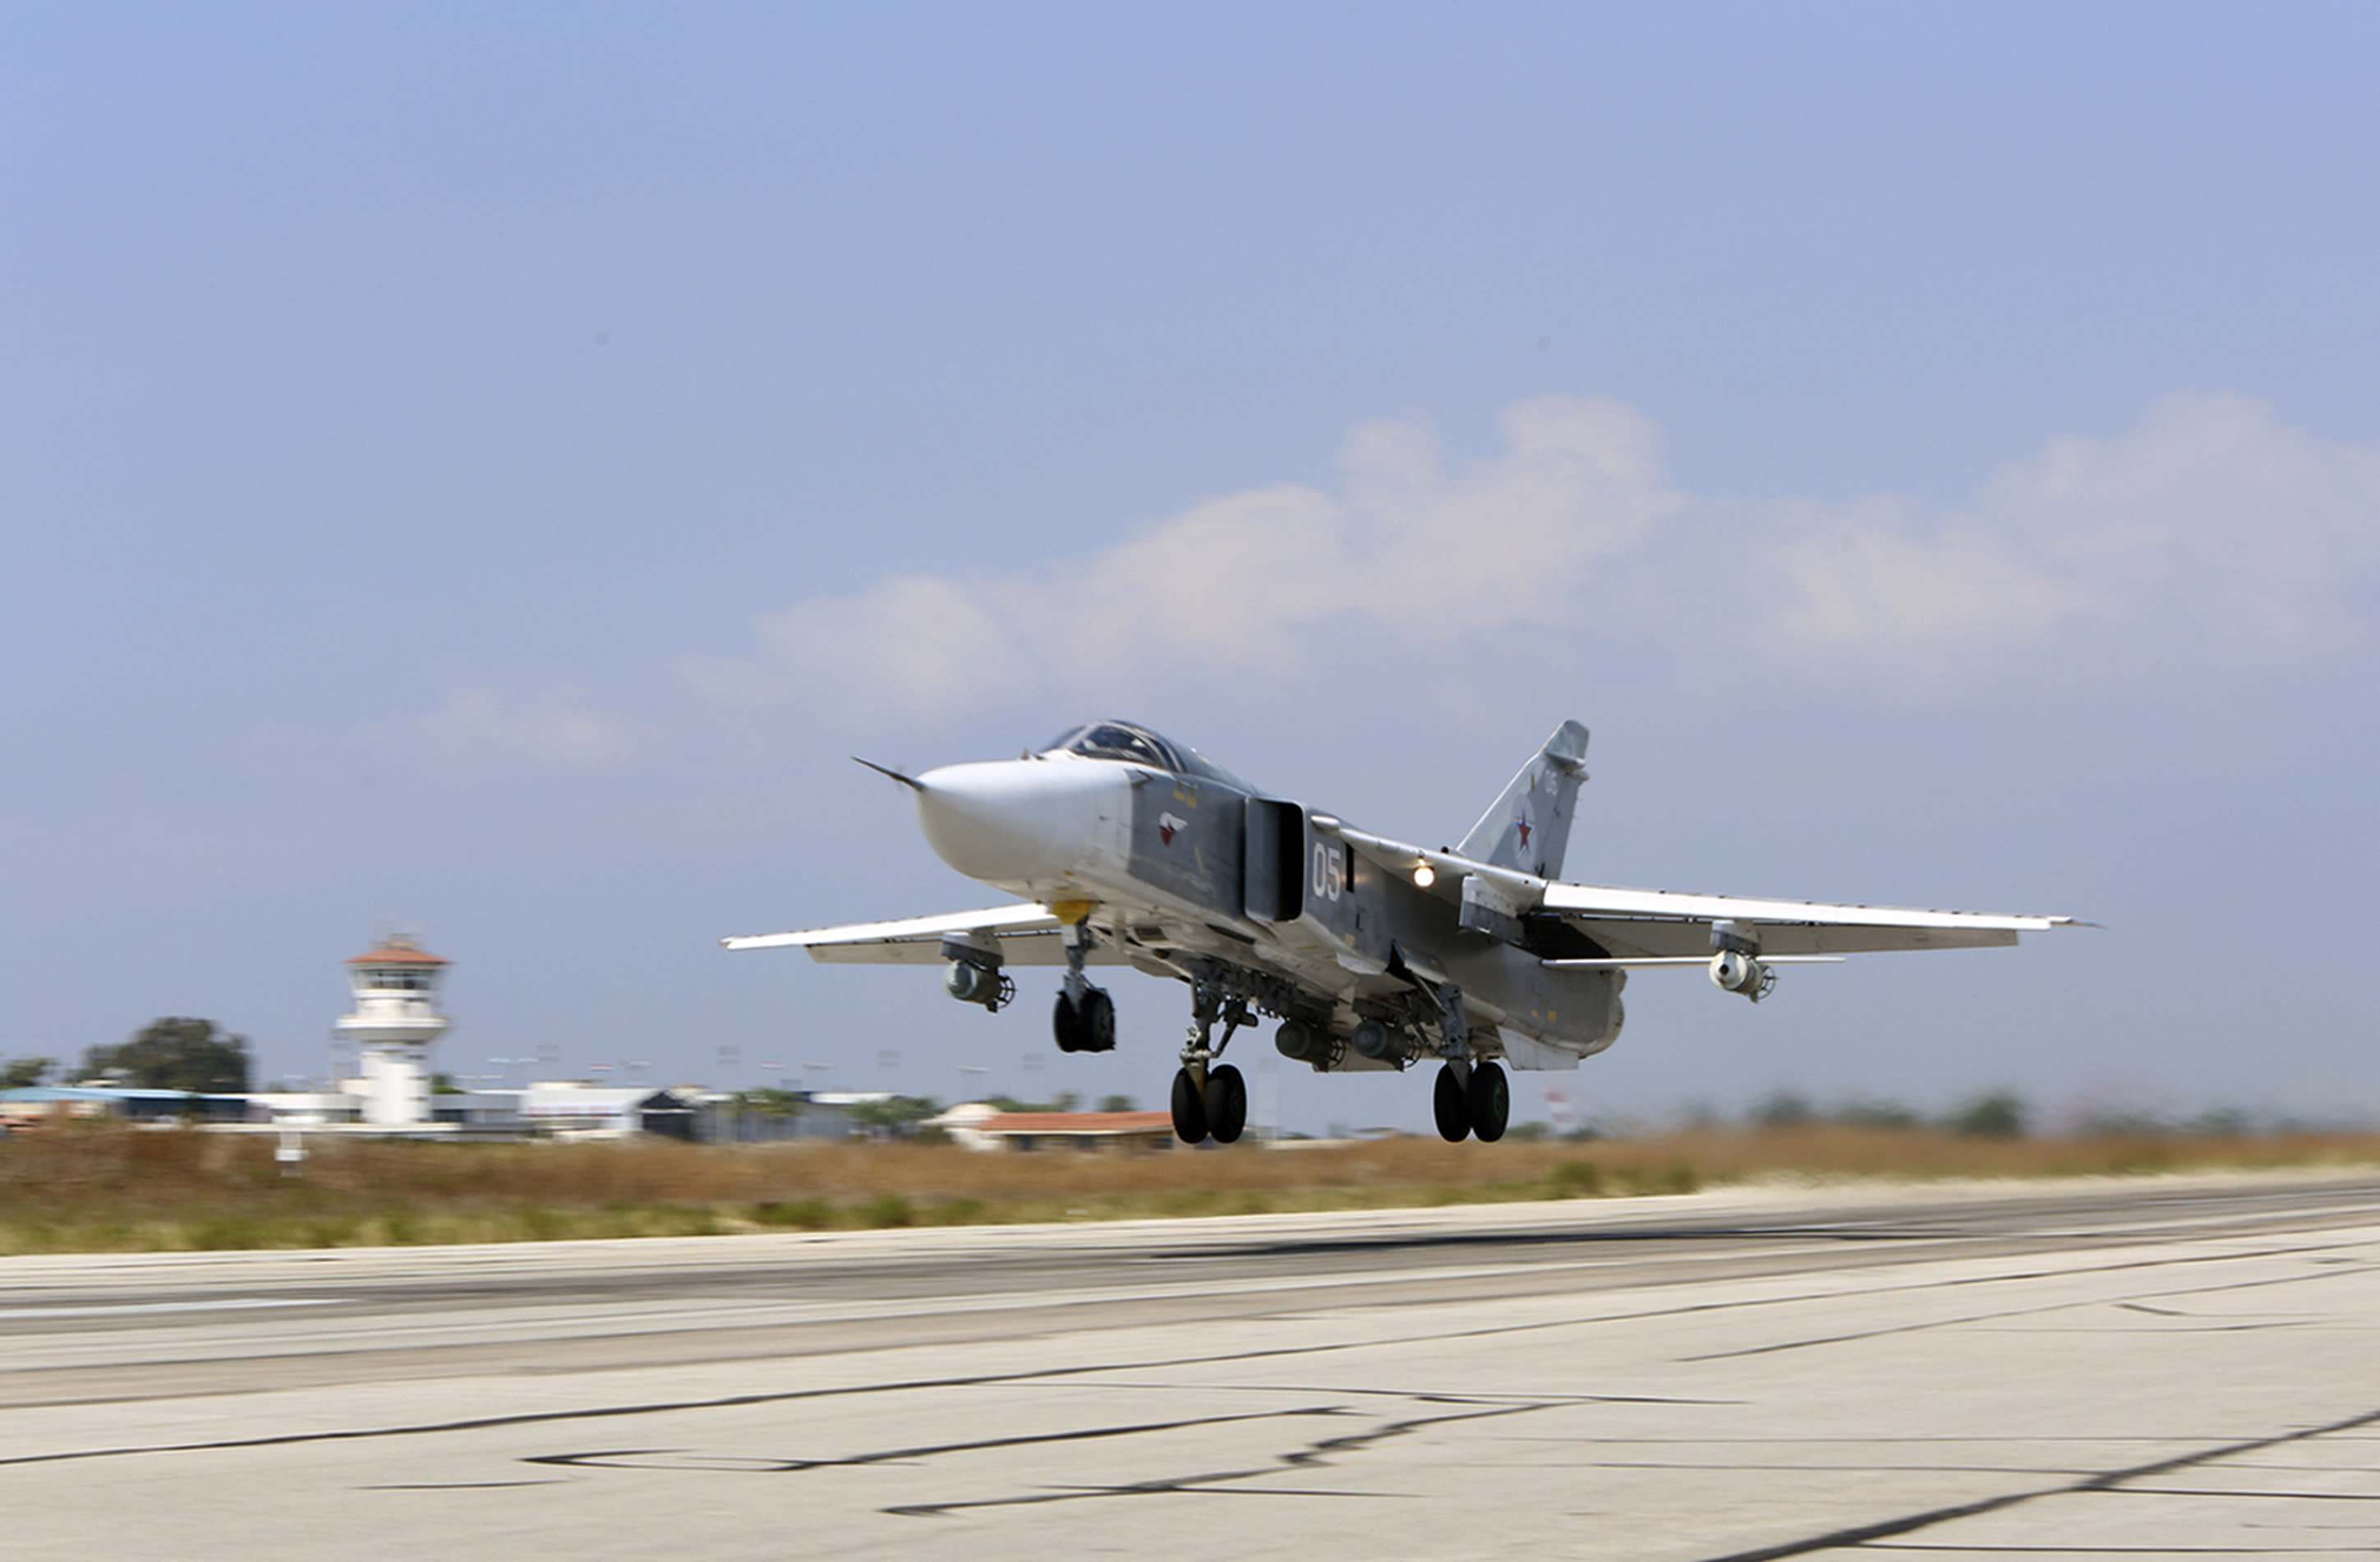 Russian entry into Syria's air wars raises worries